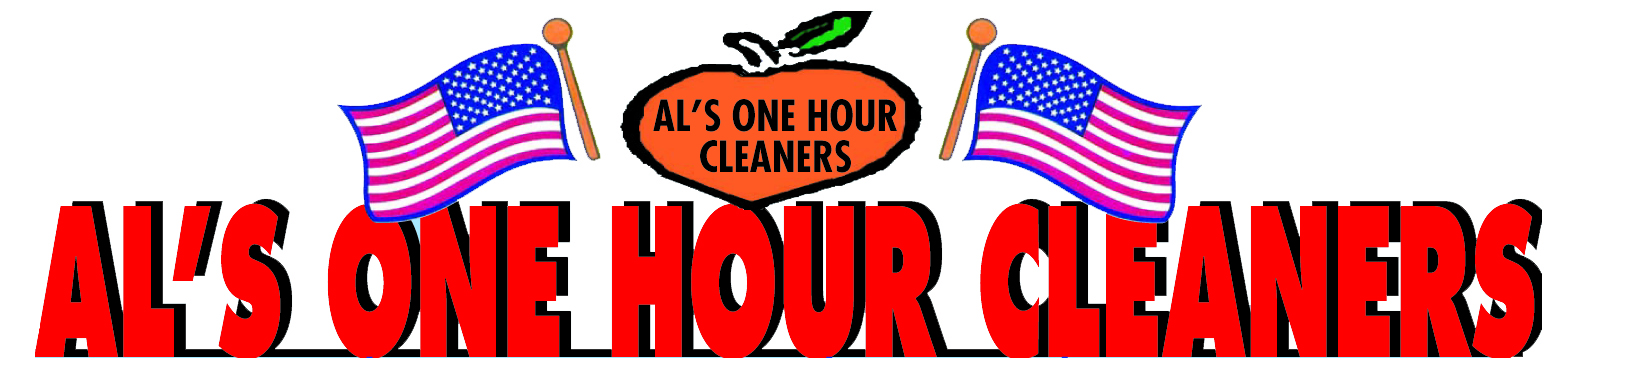 Al's One Hour Cleaners